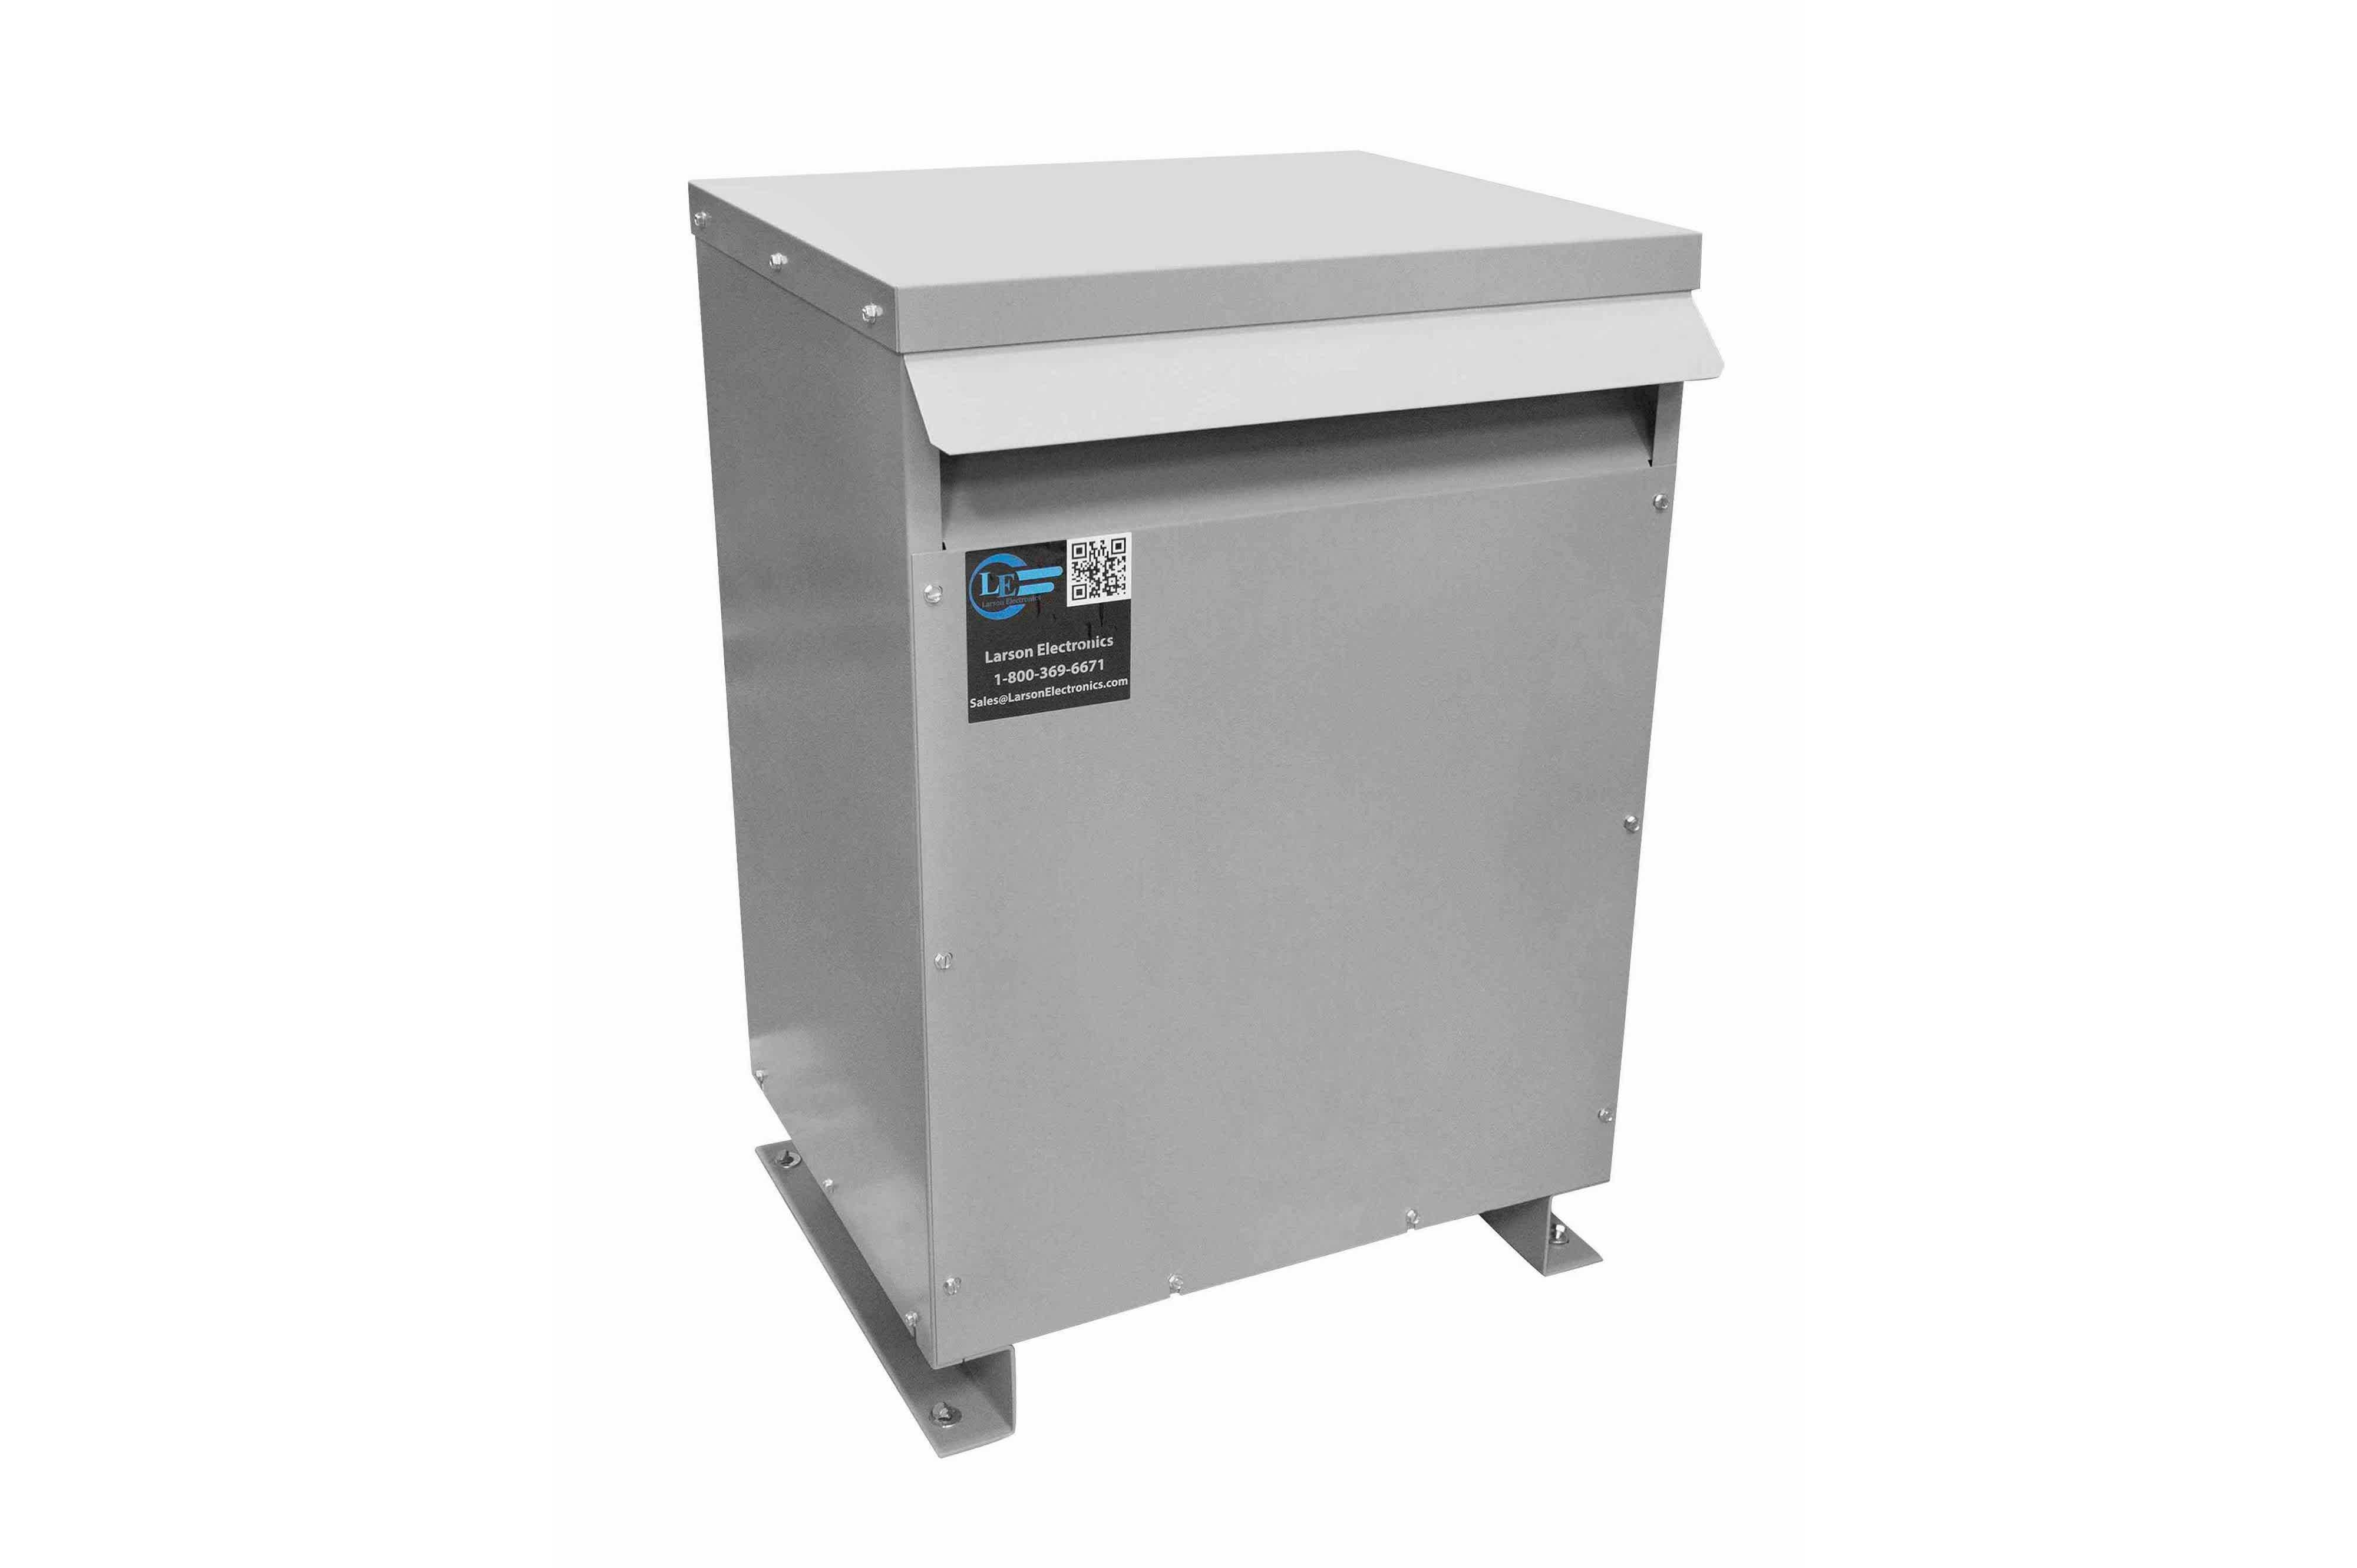 75 kVA 3PH DOE Transformer, 600V Delta Primary, 380Y/220 Wye-N Secondary, N3R, Ventilated, 60 Hz